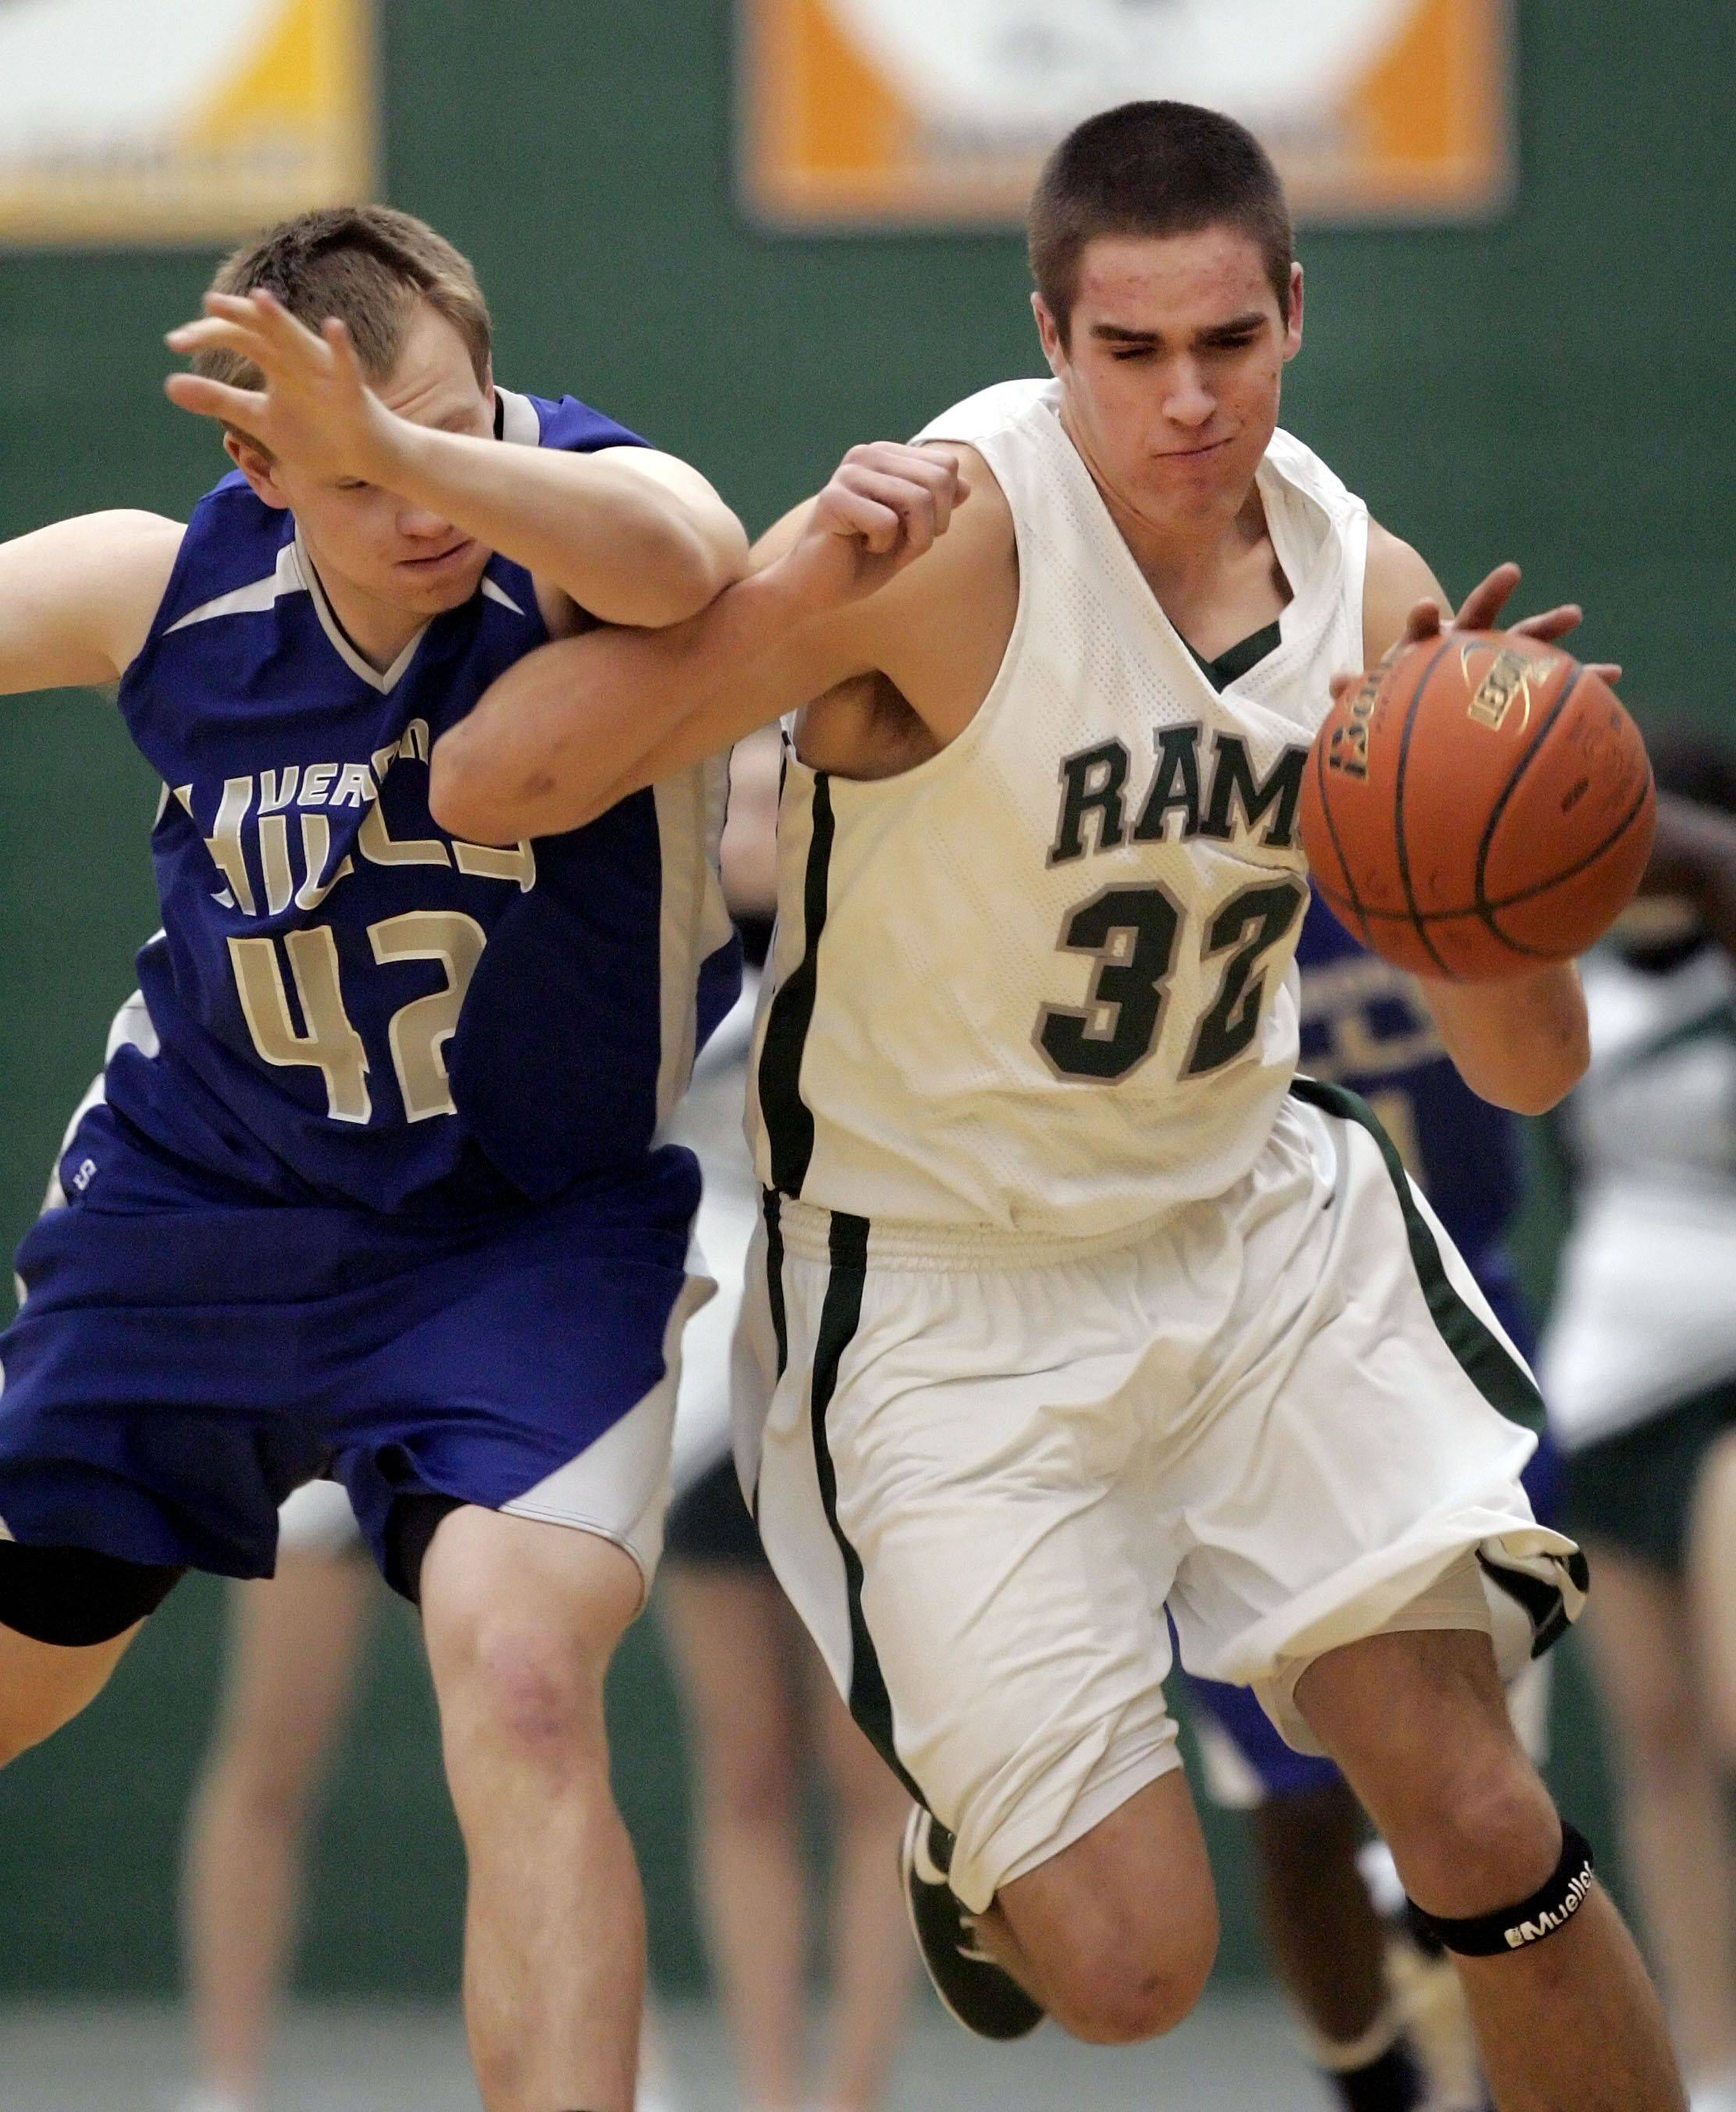 Vernon Hills' John Foley, left, and Grayslake Central's Casey Boyle battle for a loose ball .